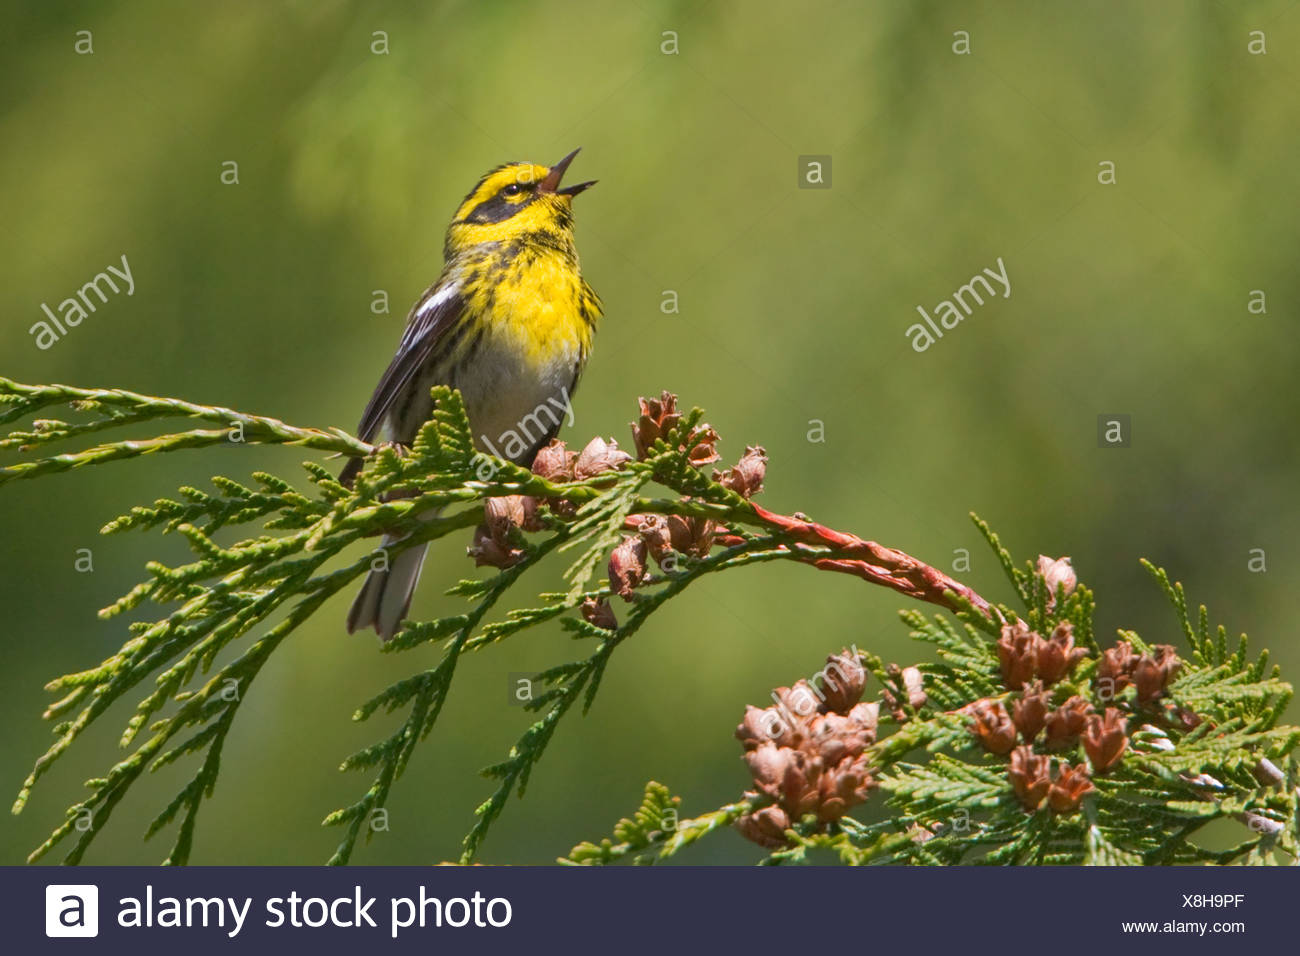 Townsend's warbler (Dendroica townsendi) perched on an evergreen branch in Victoria, Vancouver Island, British Columbia, Canada - Stock Image